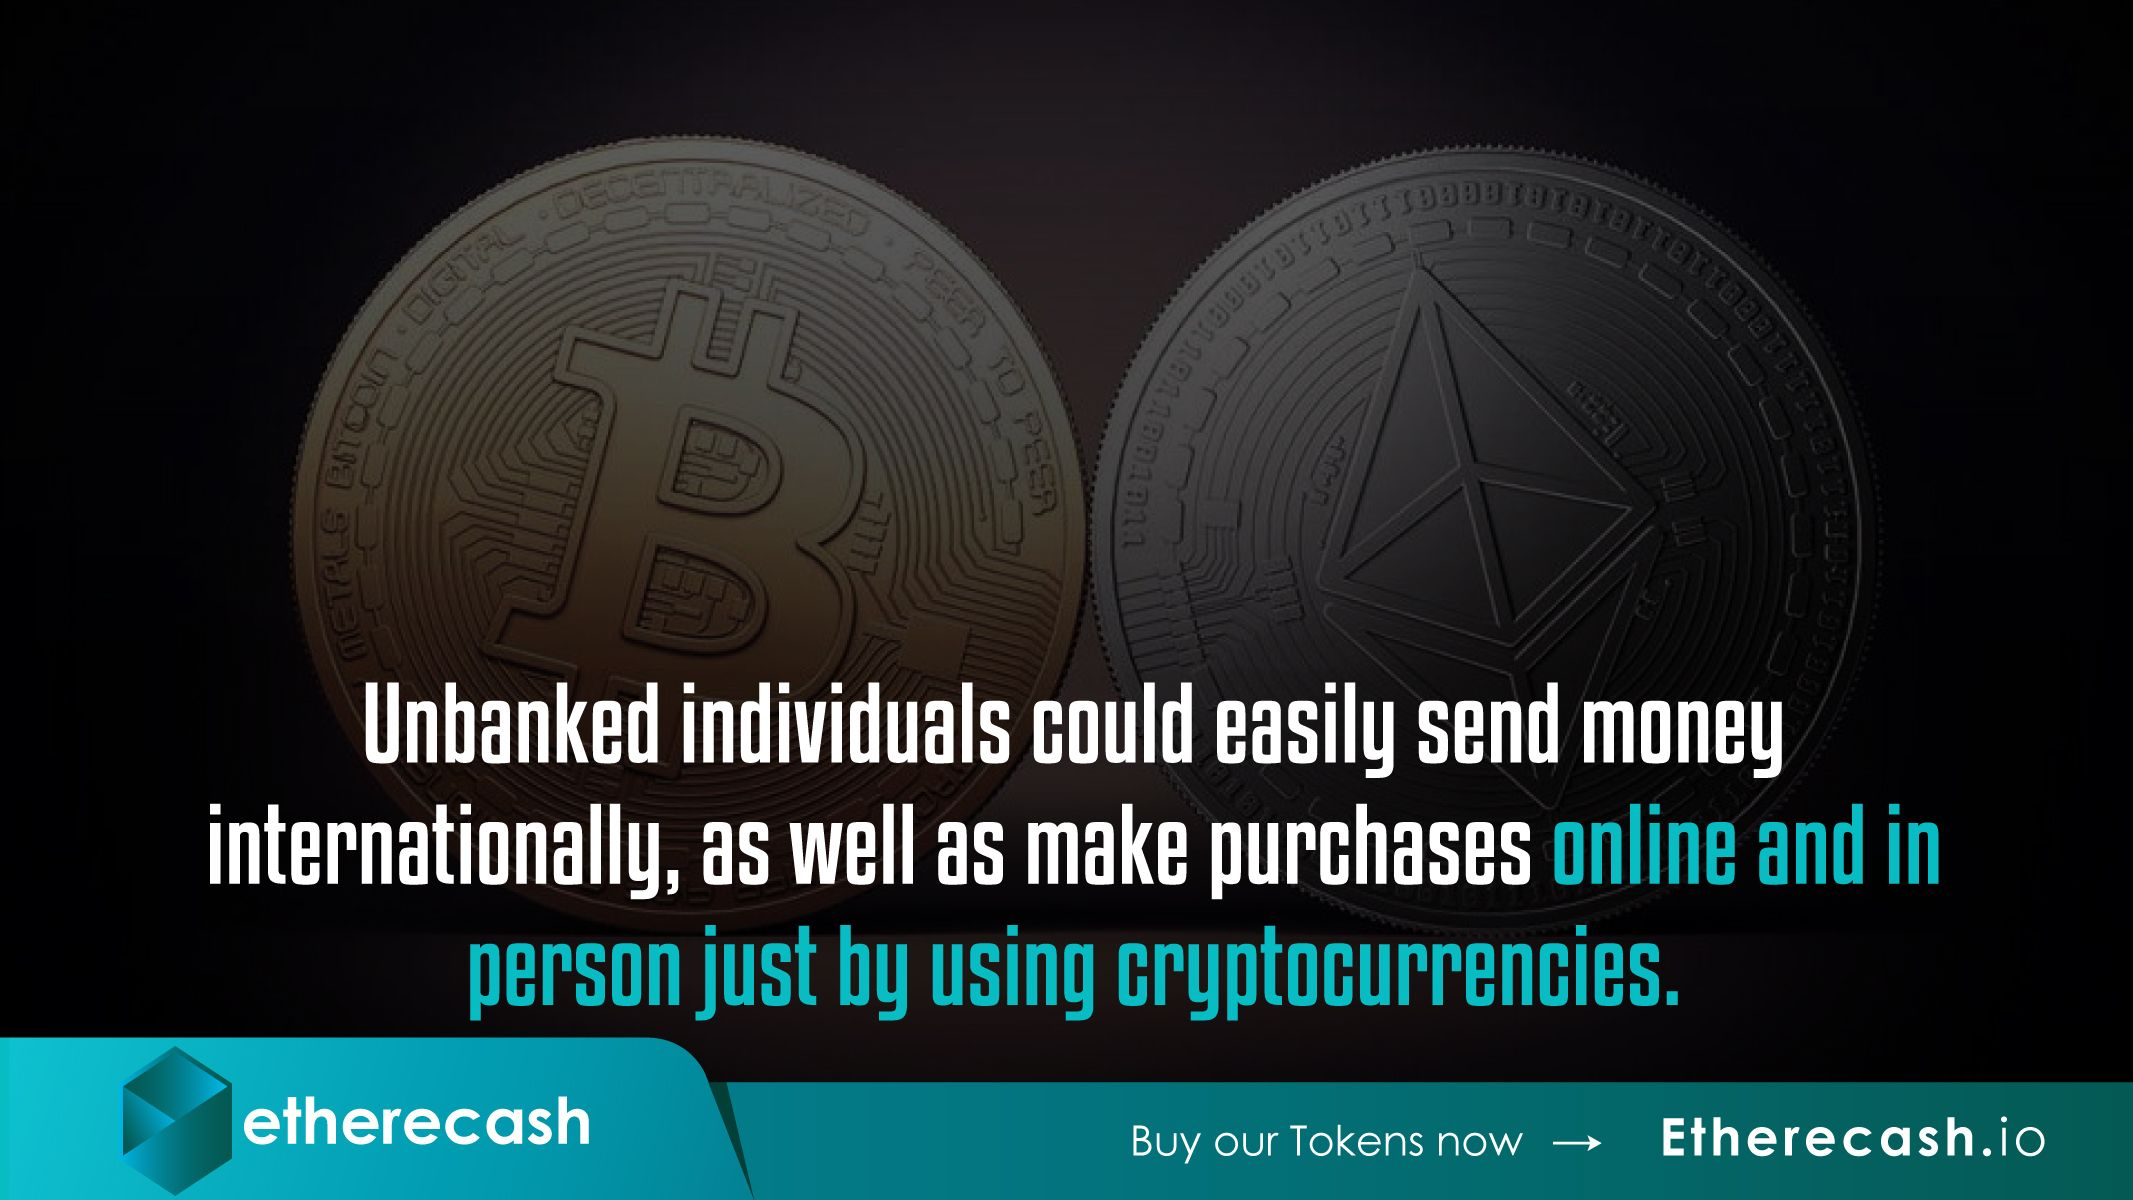 Unbanked Individuals Could Easily Send Money Internationally As Well Make Purchases Online And In Person Just By Using Cryptocurrencies